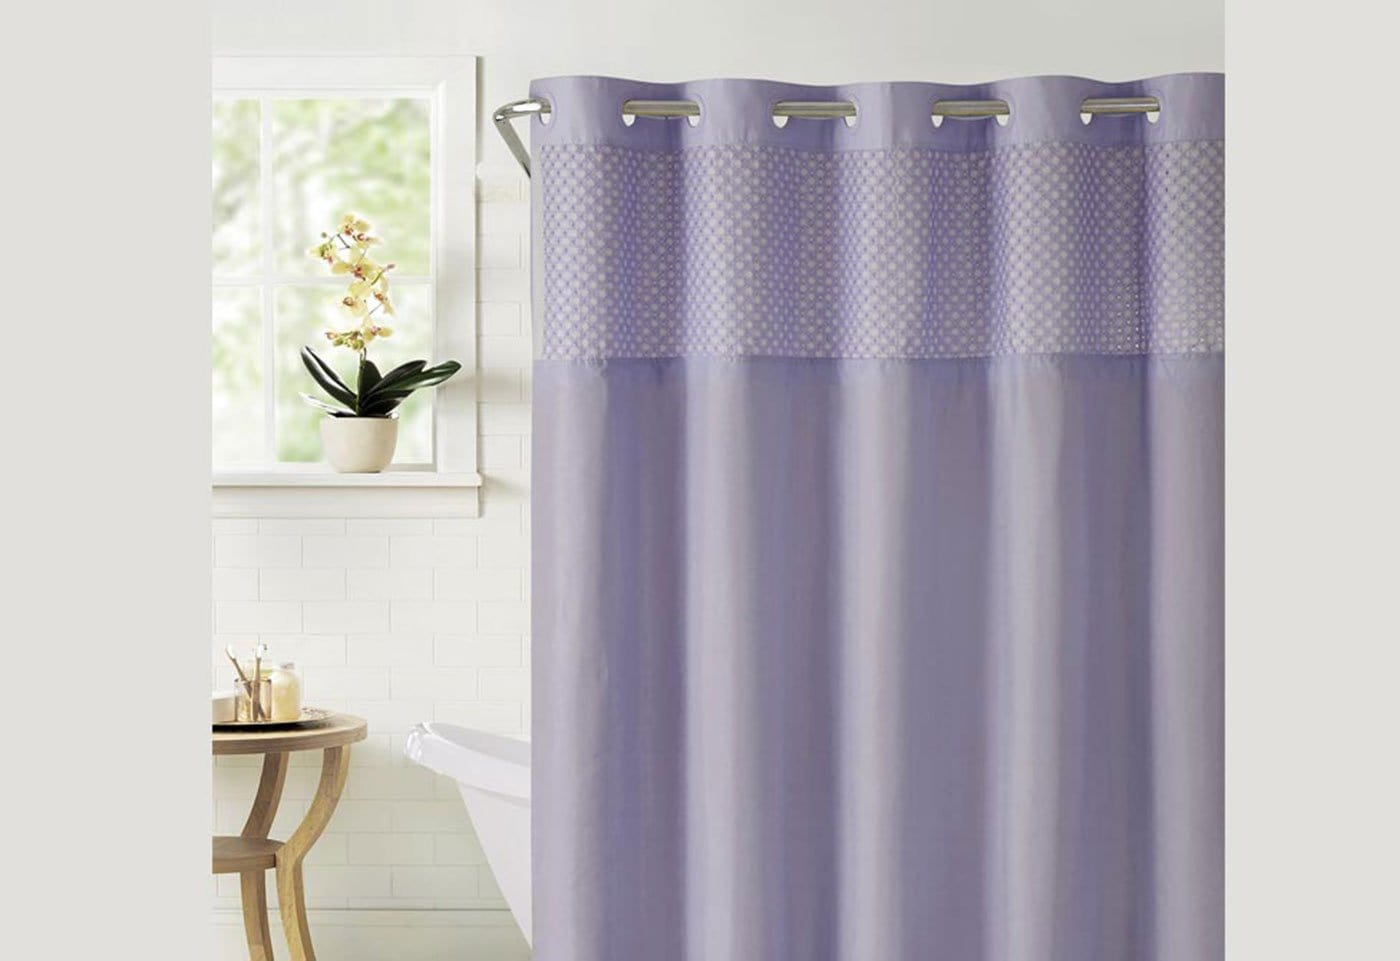 Hookless® Bahamas Shower Curtain Includes Snap On/Off Replaceable Liner - Lilac